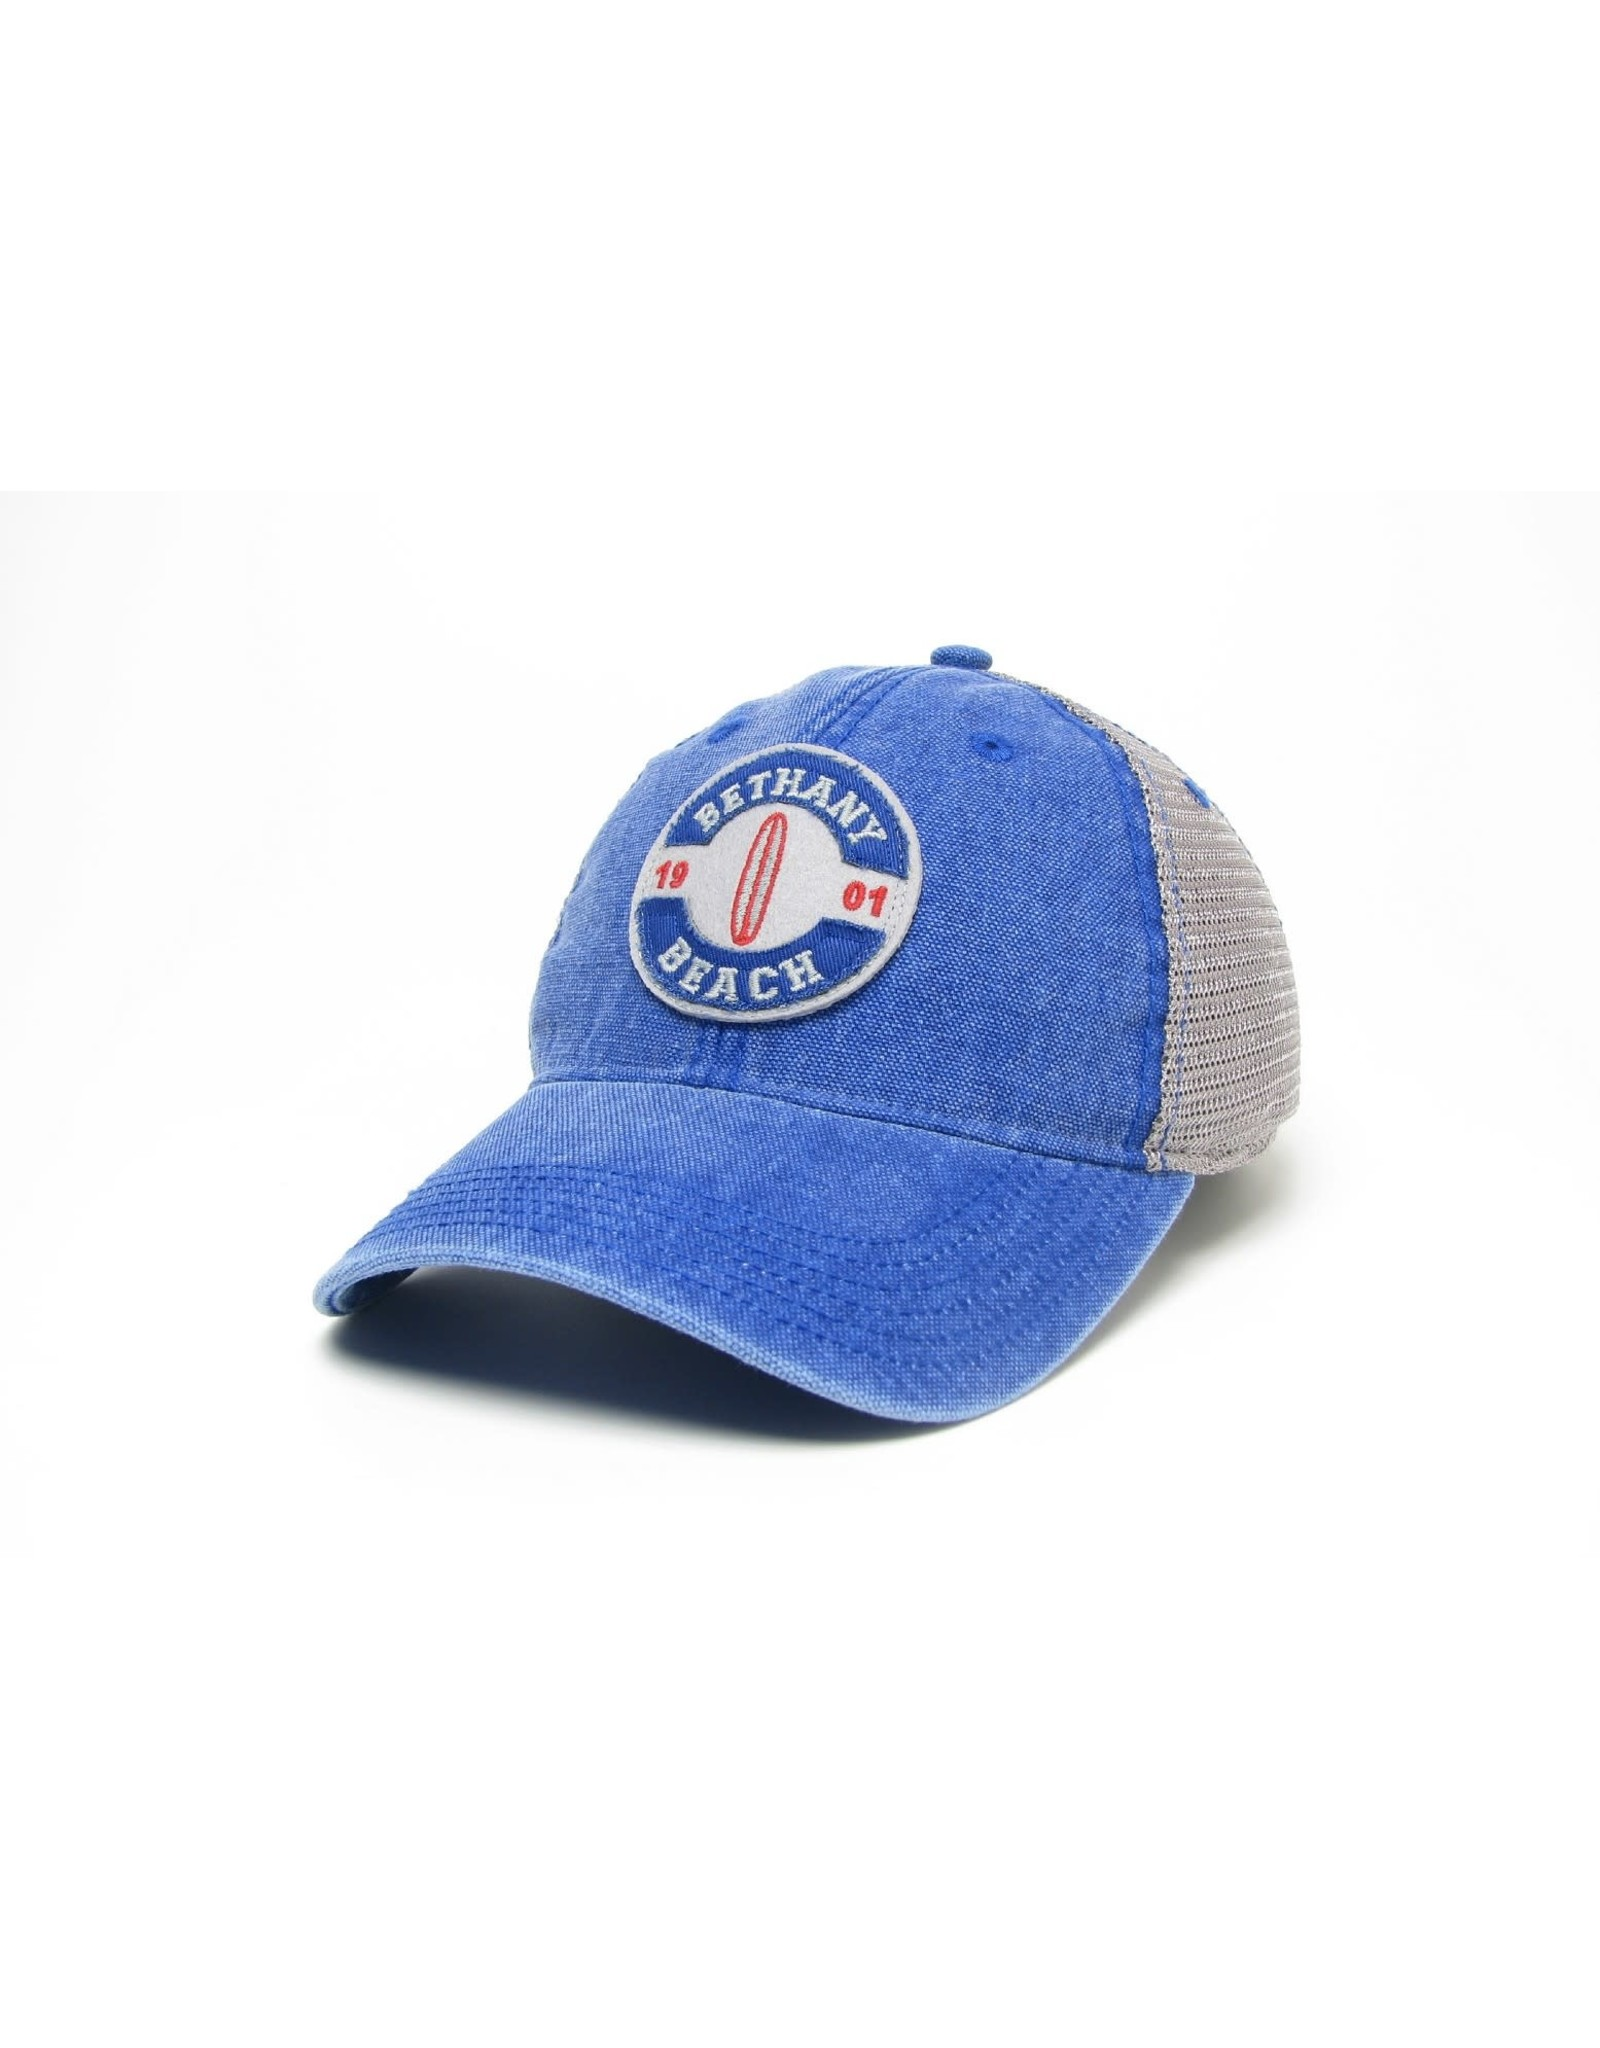 LEGACY ATHLETICS BETHANY LEGACY OLD FAVORITE TRUCKER HAT ROYAL BLUE SURFBOARD